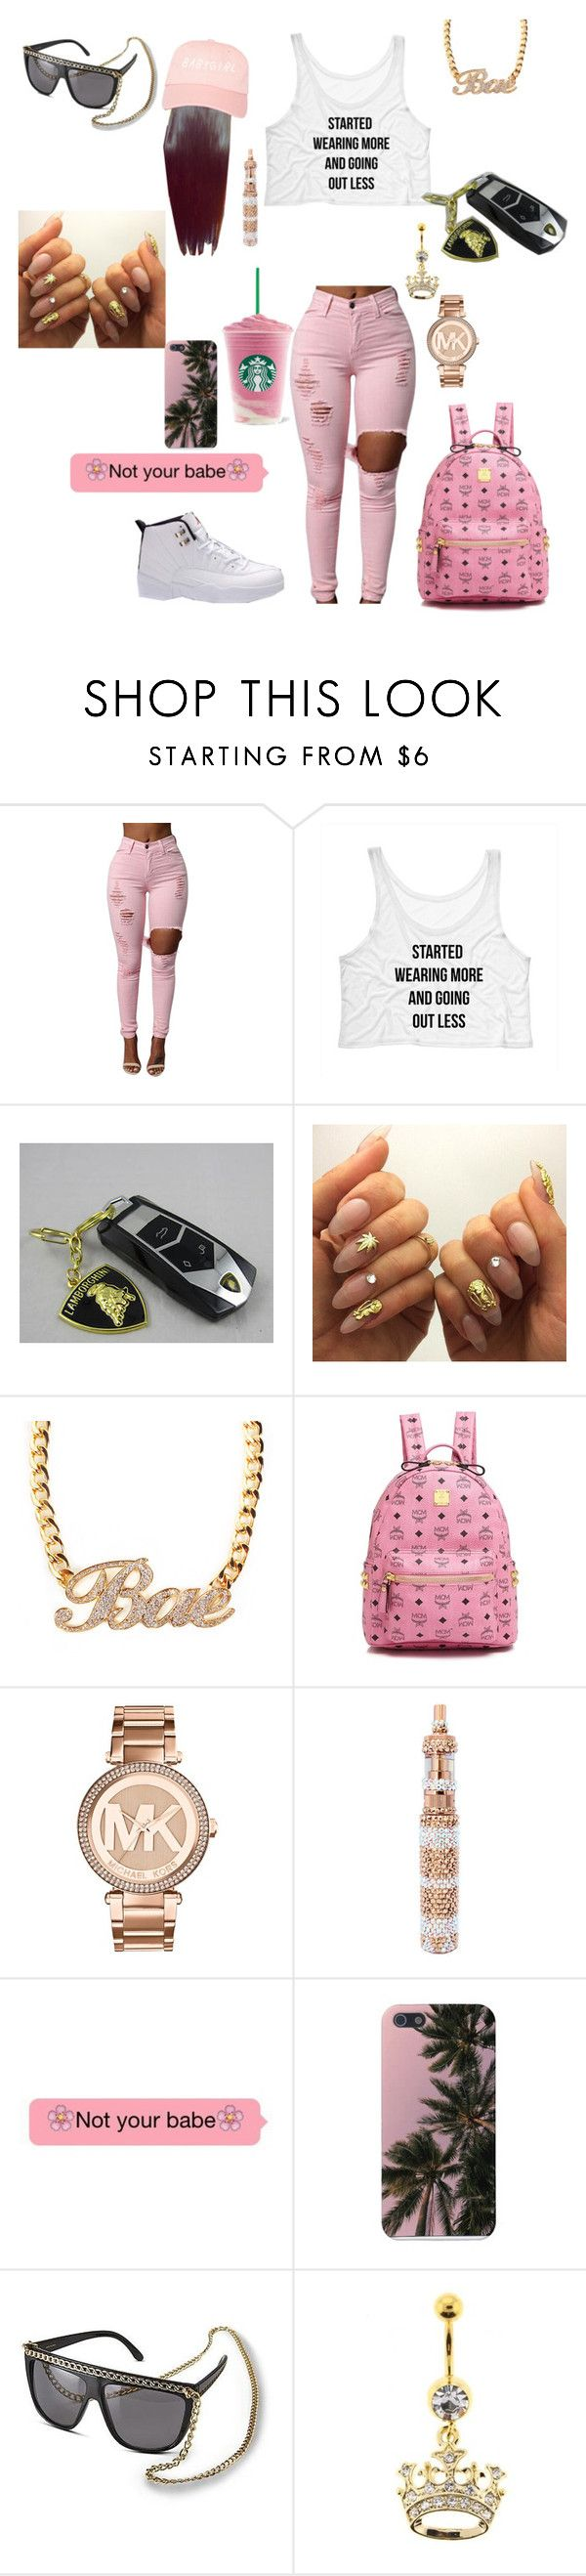 """Going to chill with uncle drake-ray'Vaniyah"" by mindless-loyalty2 ❤ liked on Polyvore featuring Retrò, MCM, MICHAEL Michael Kors and Nicki Minaj"